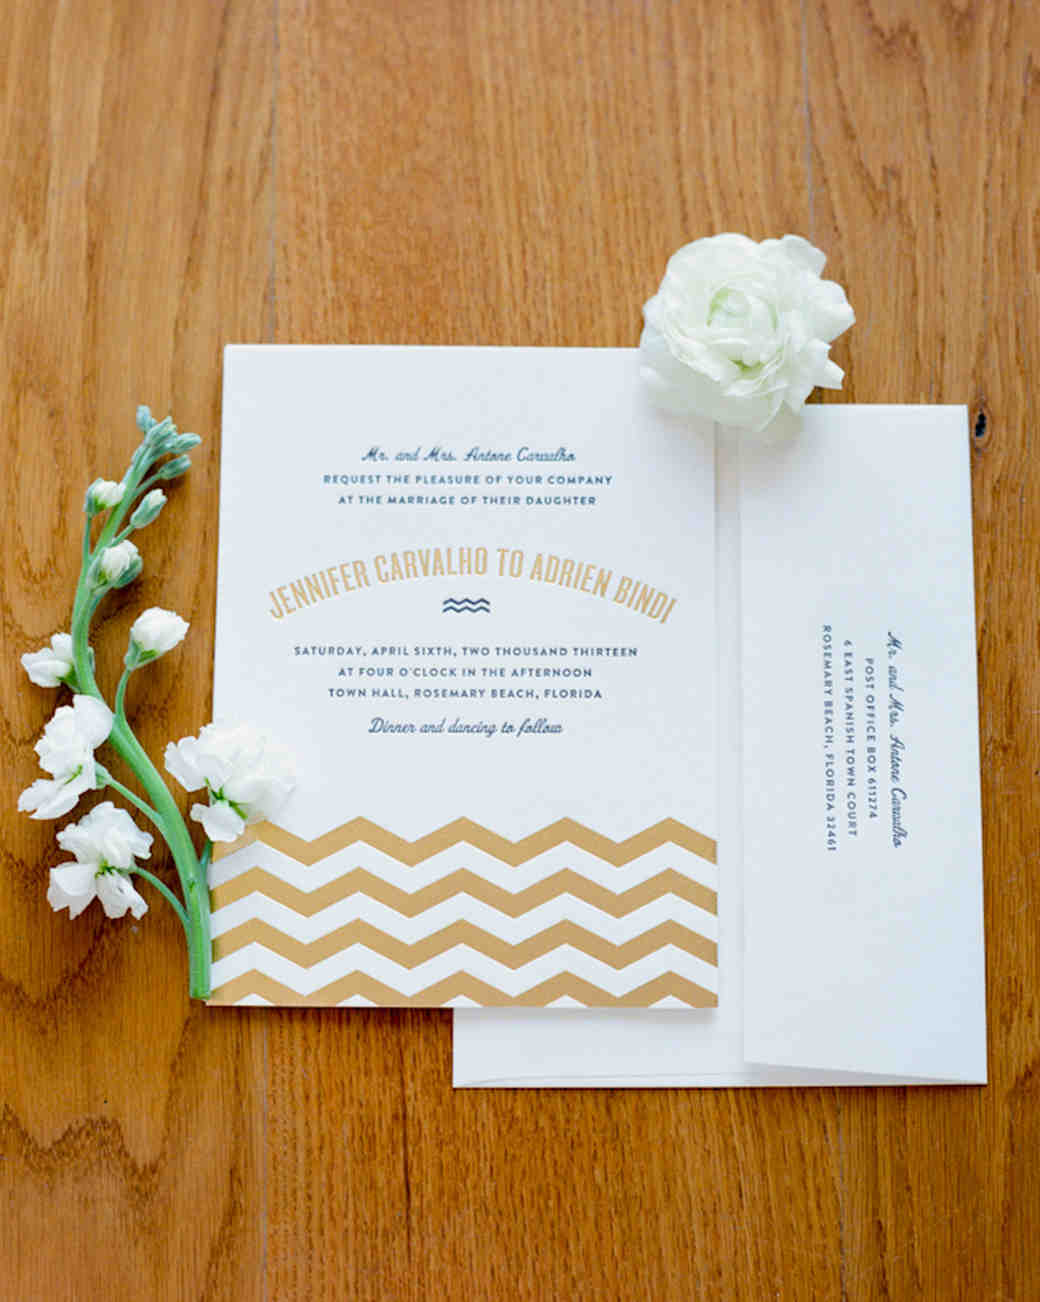 Nautical Wedding Invitations Perfect for an Oceanside Celebration – Nautical Theme Wedding Invitations